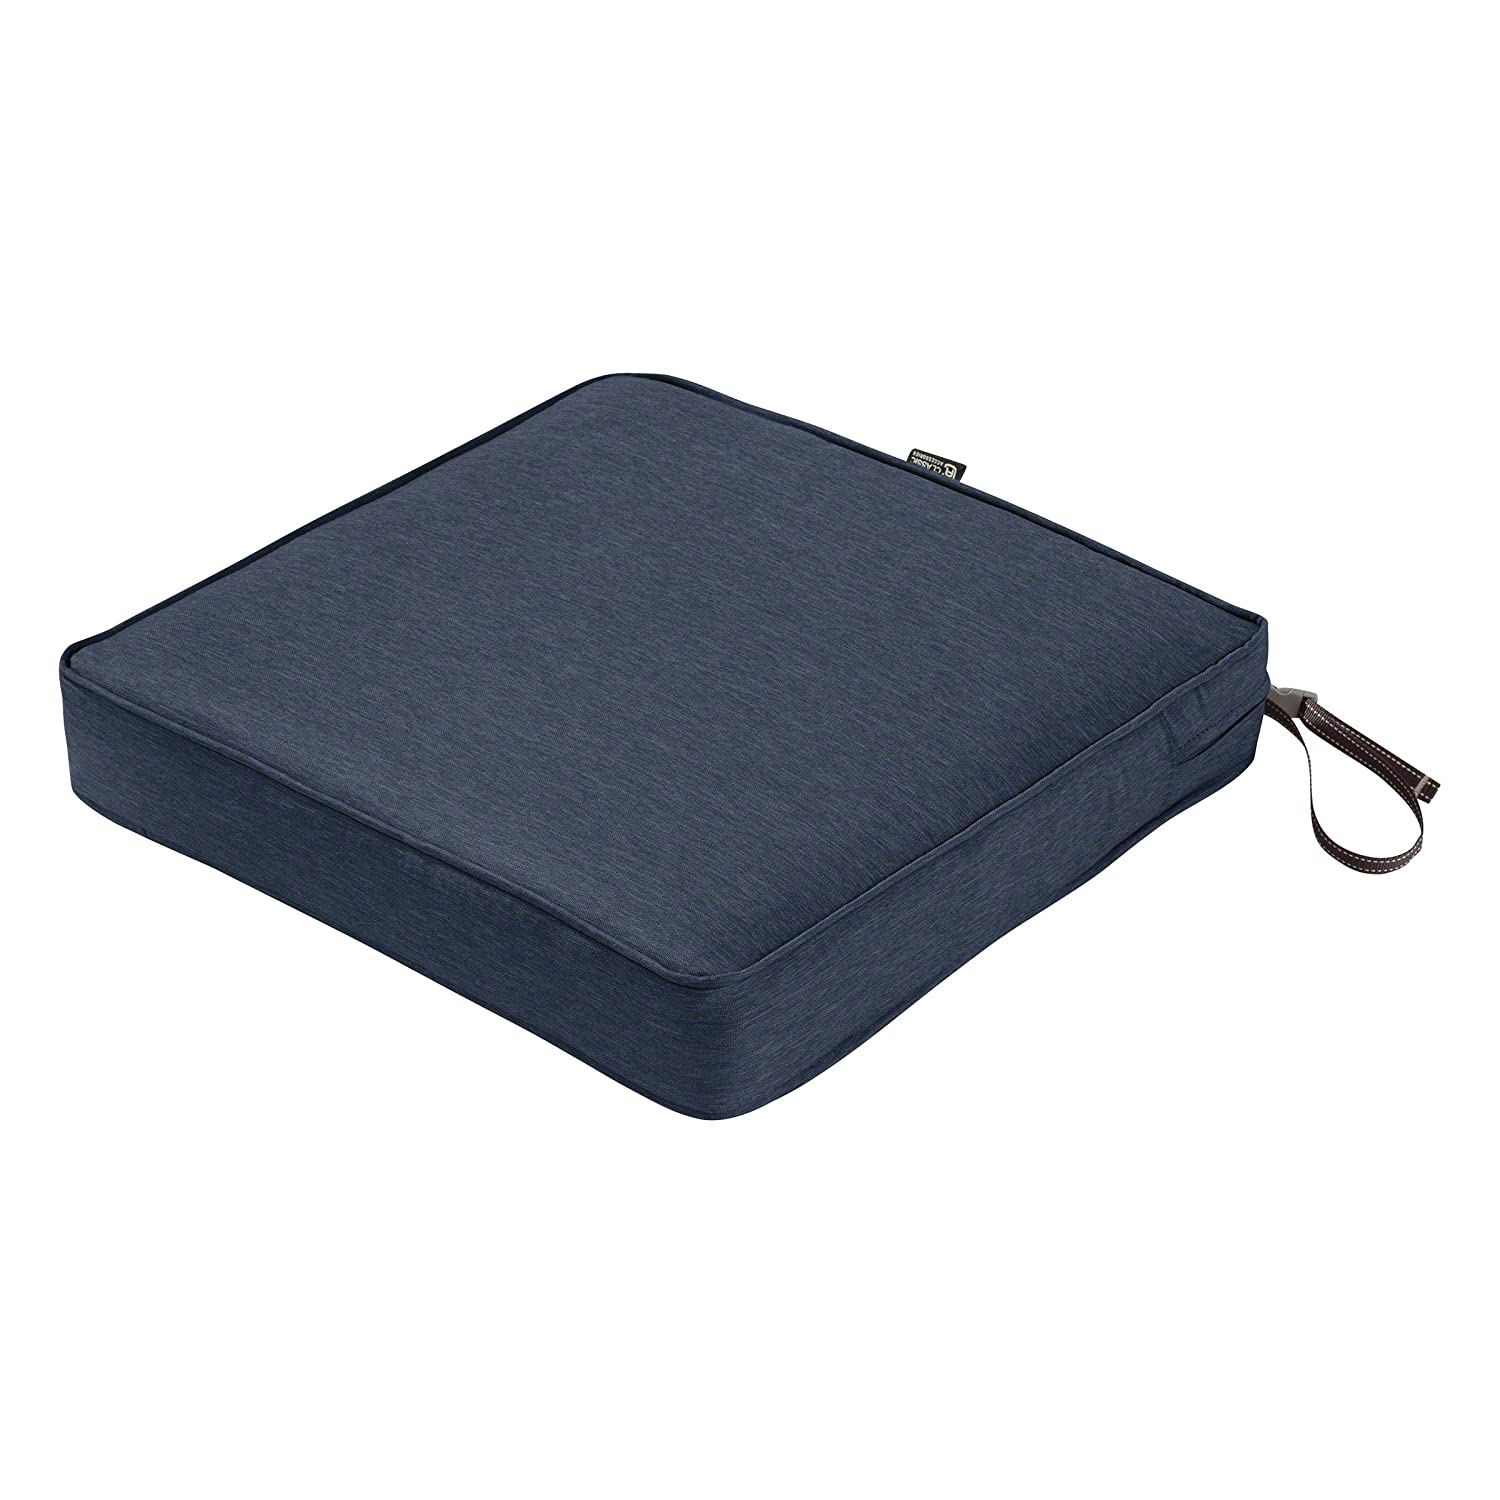 "Classic Accessories Montlake Seat Cushion Foam & Slip Cover, Heather Indigo, 19x19x3"" Thick"